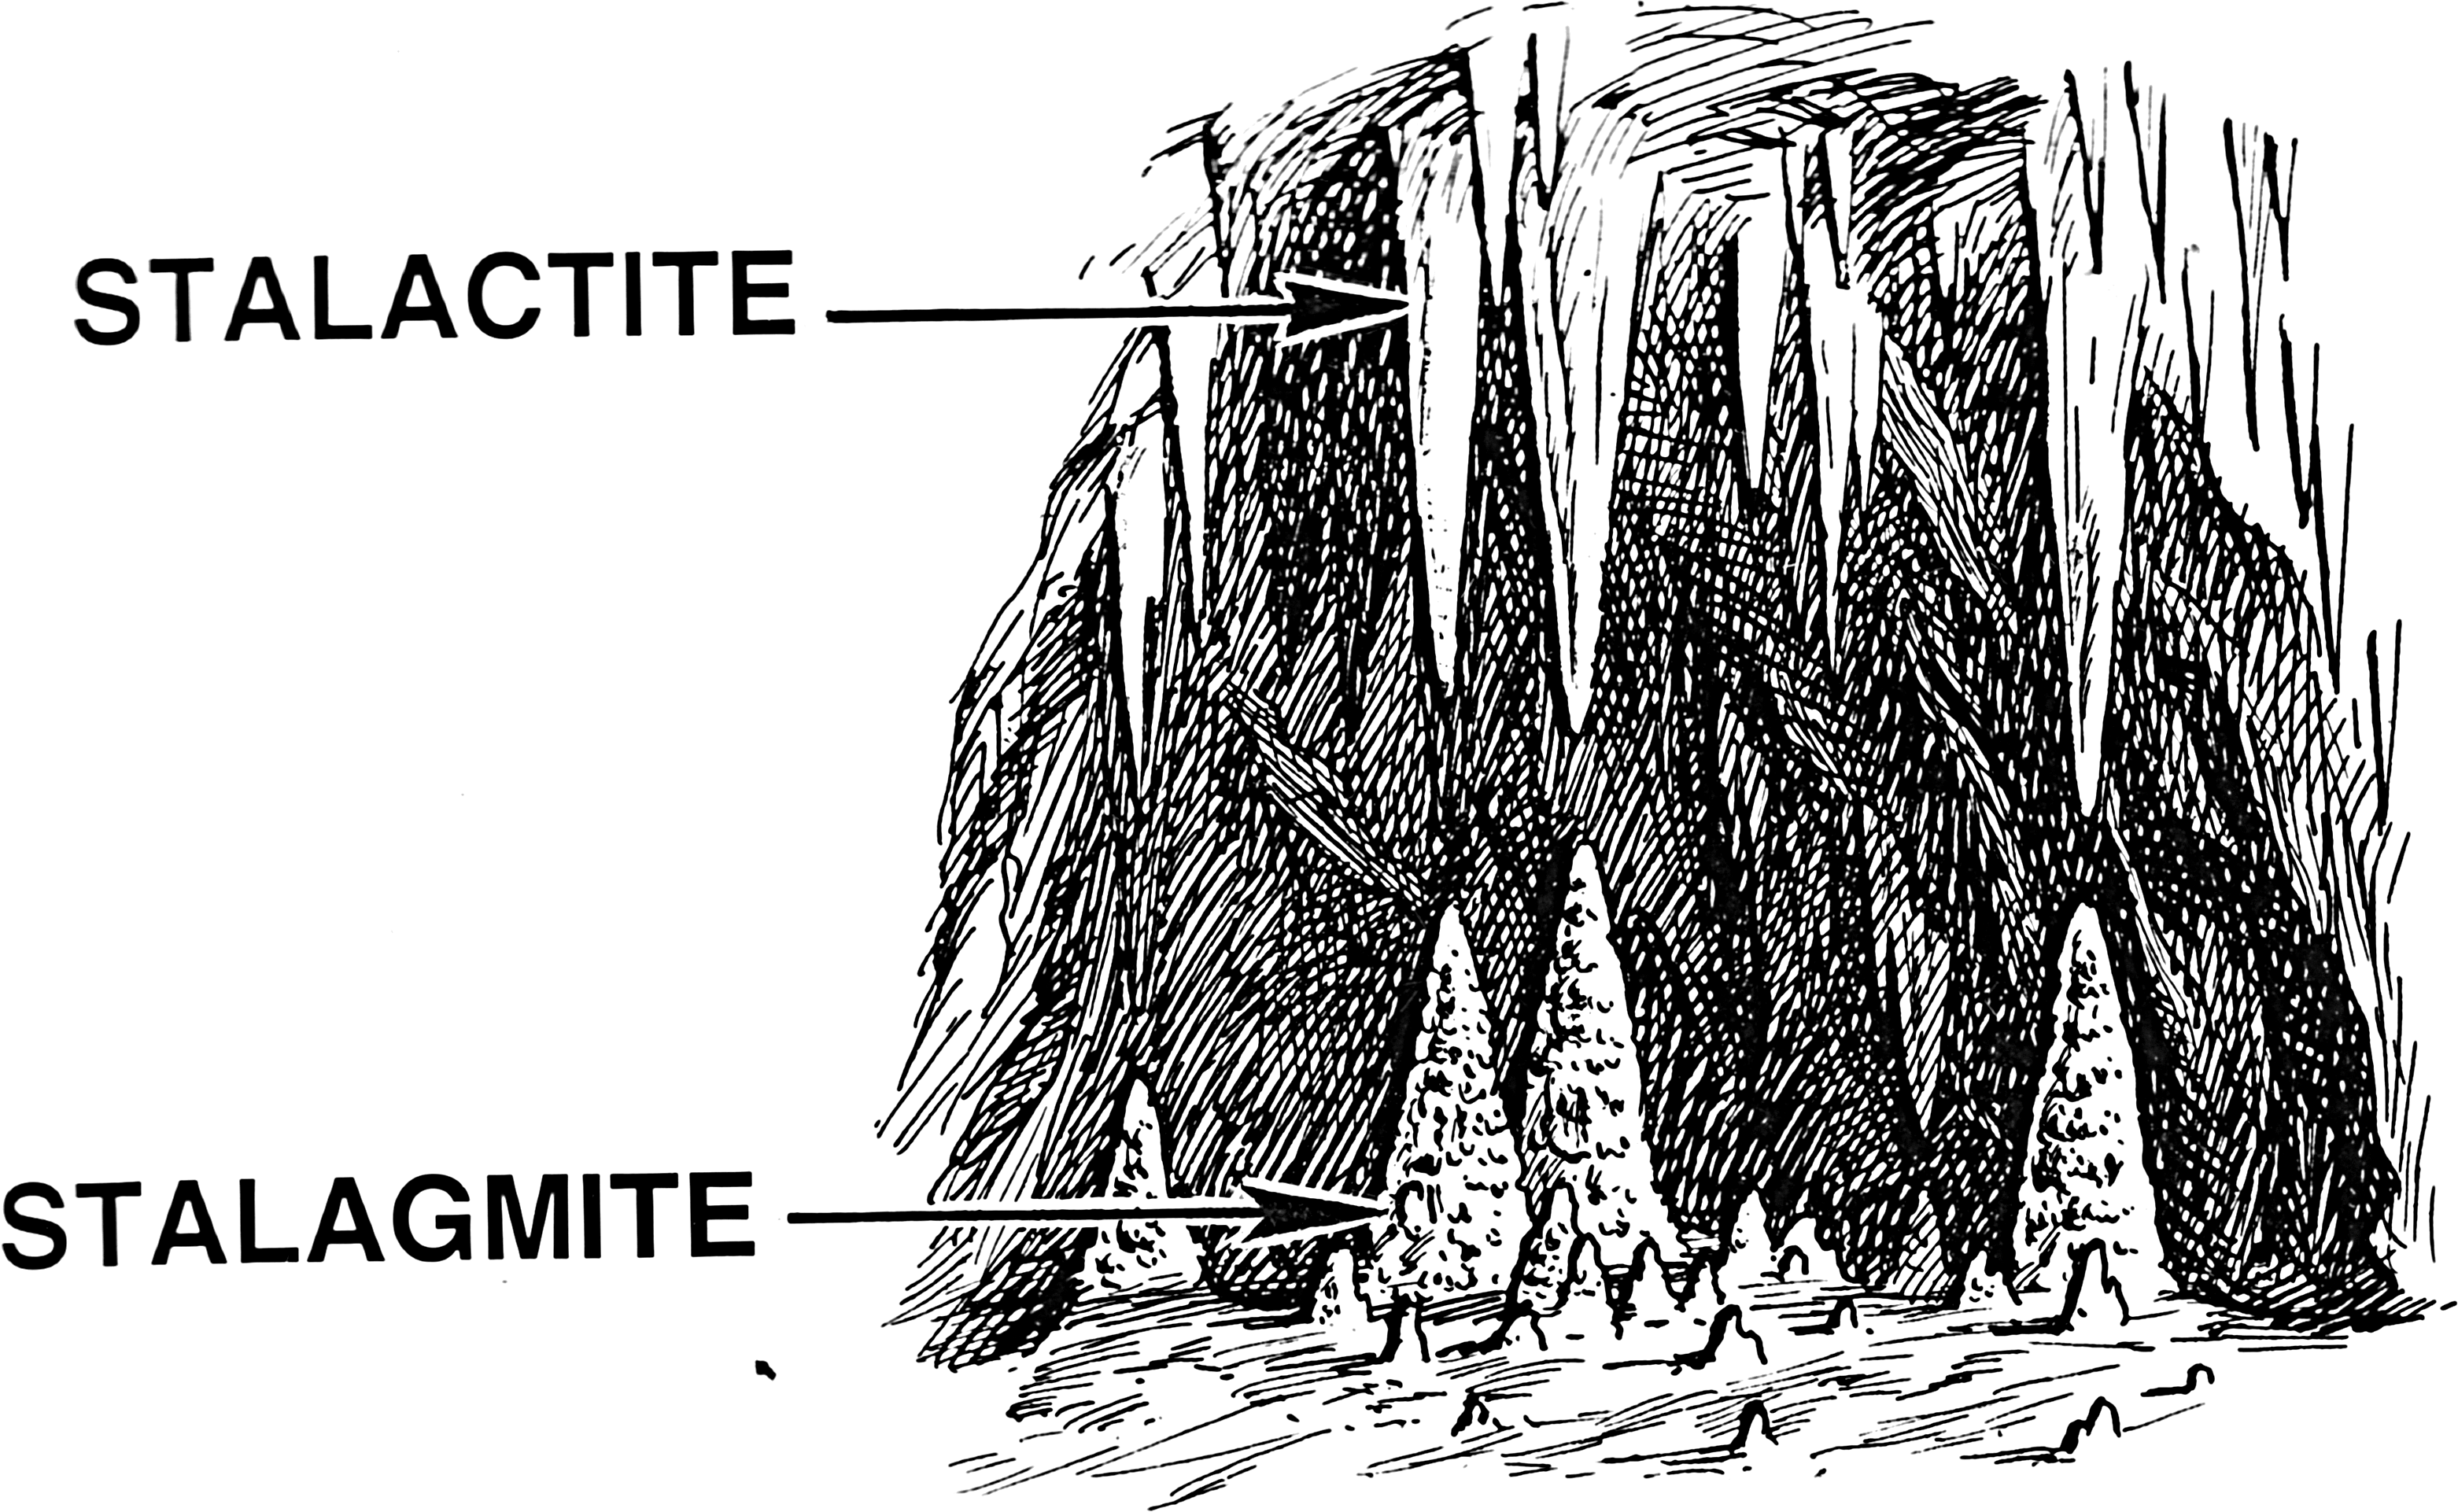 file stalactite psf png wikimedia commons